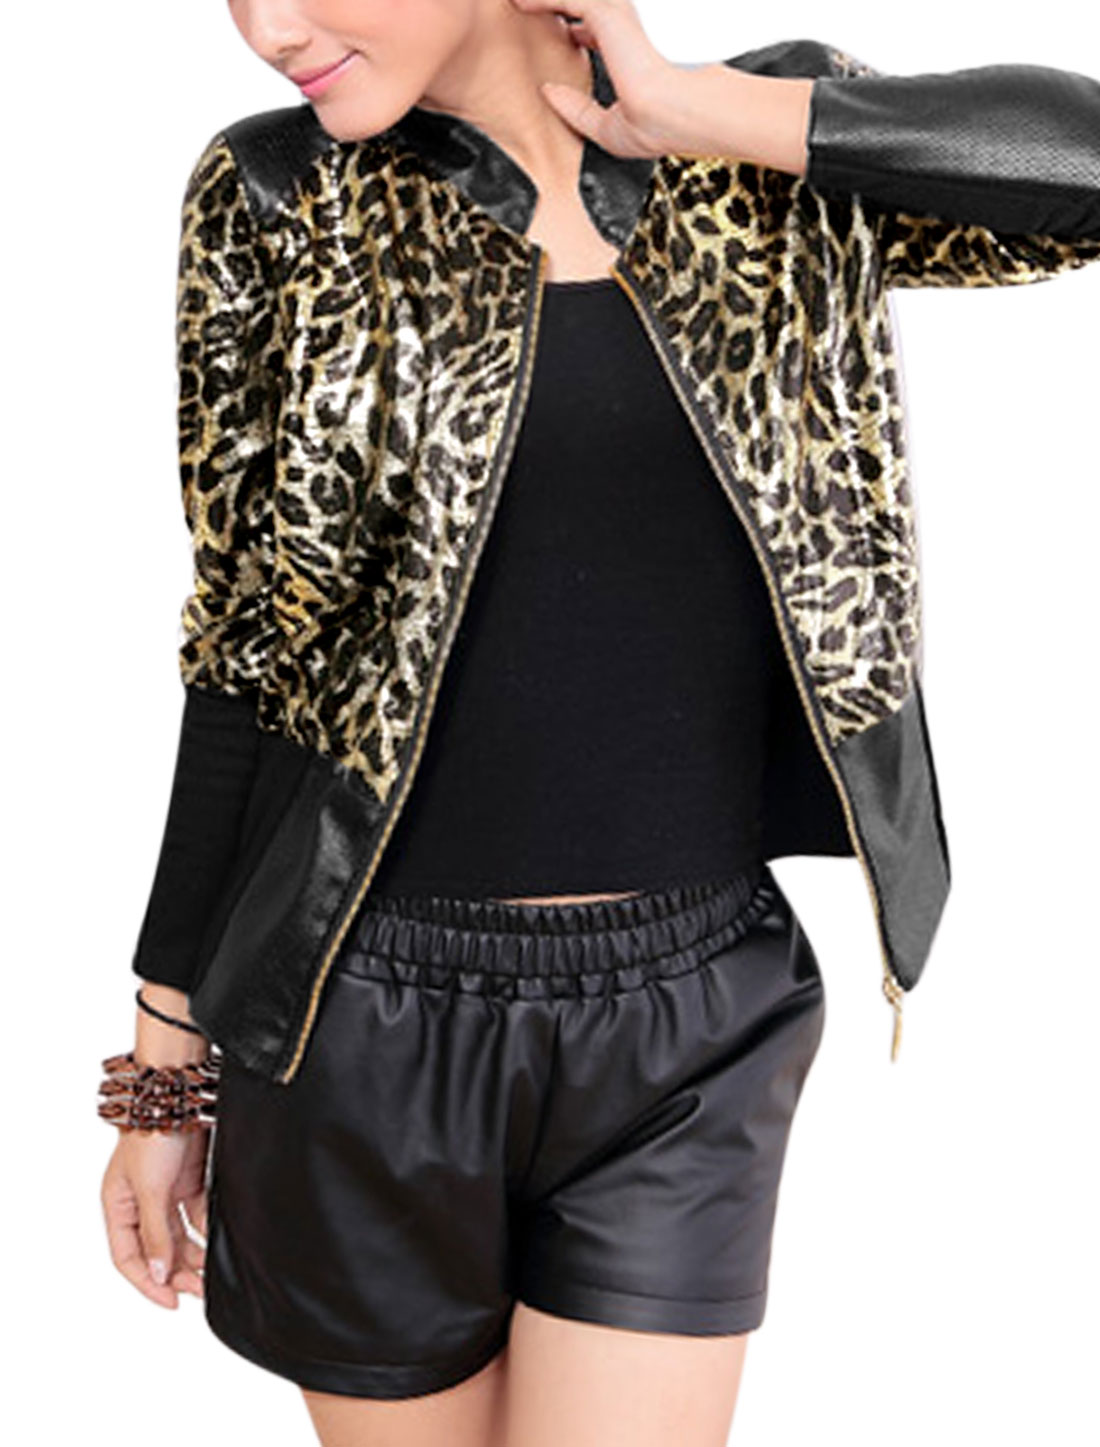 Lady Zip Fly Leopard Prints Basic Jacket Black Gold Tone M